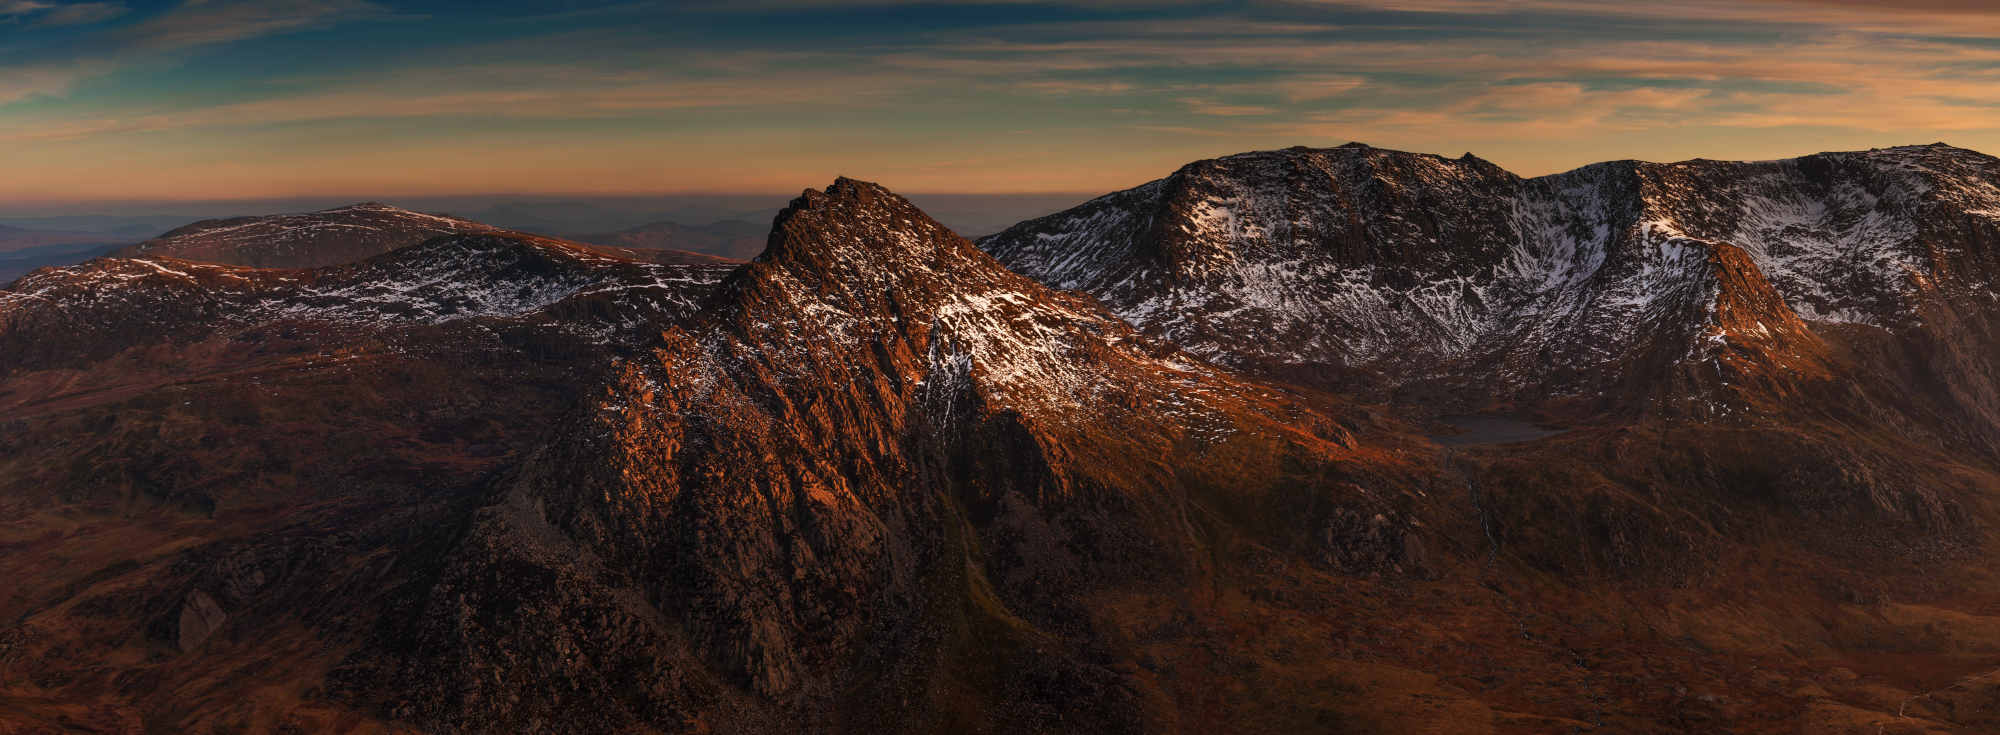 Tryfan Glyders Snowdonia North Wales canvas prints for sale Panorama